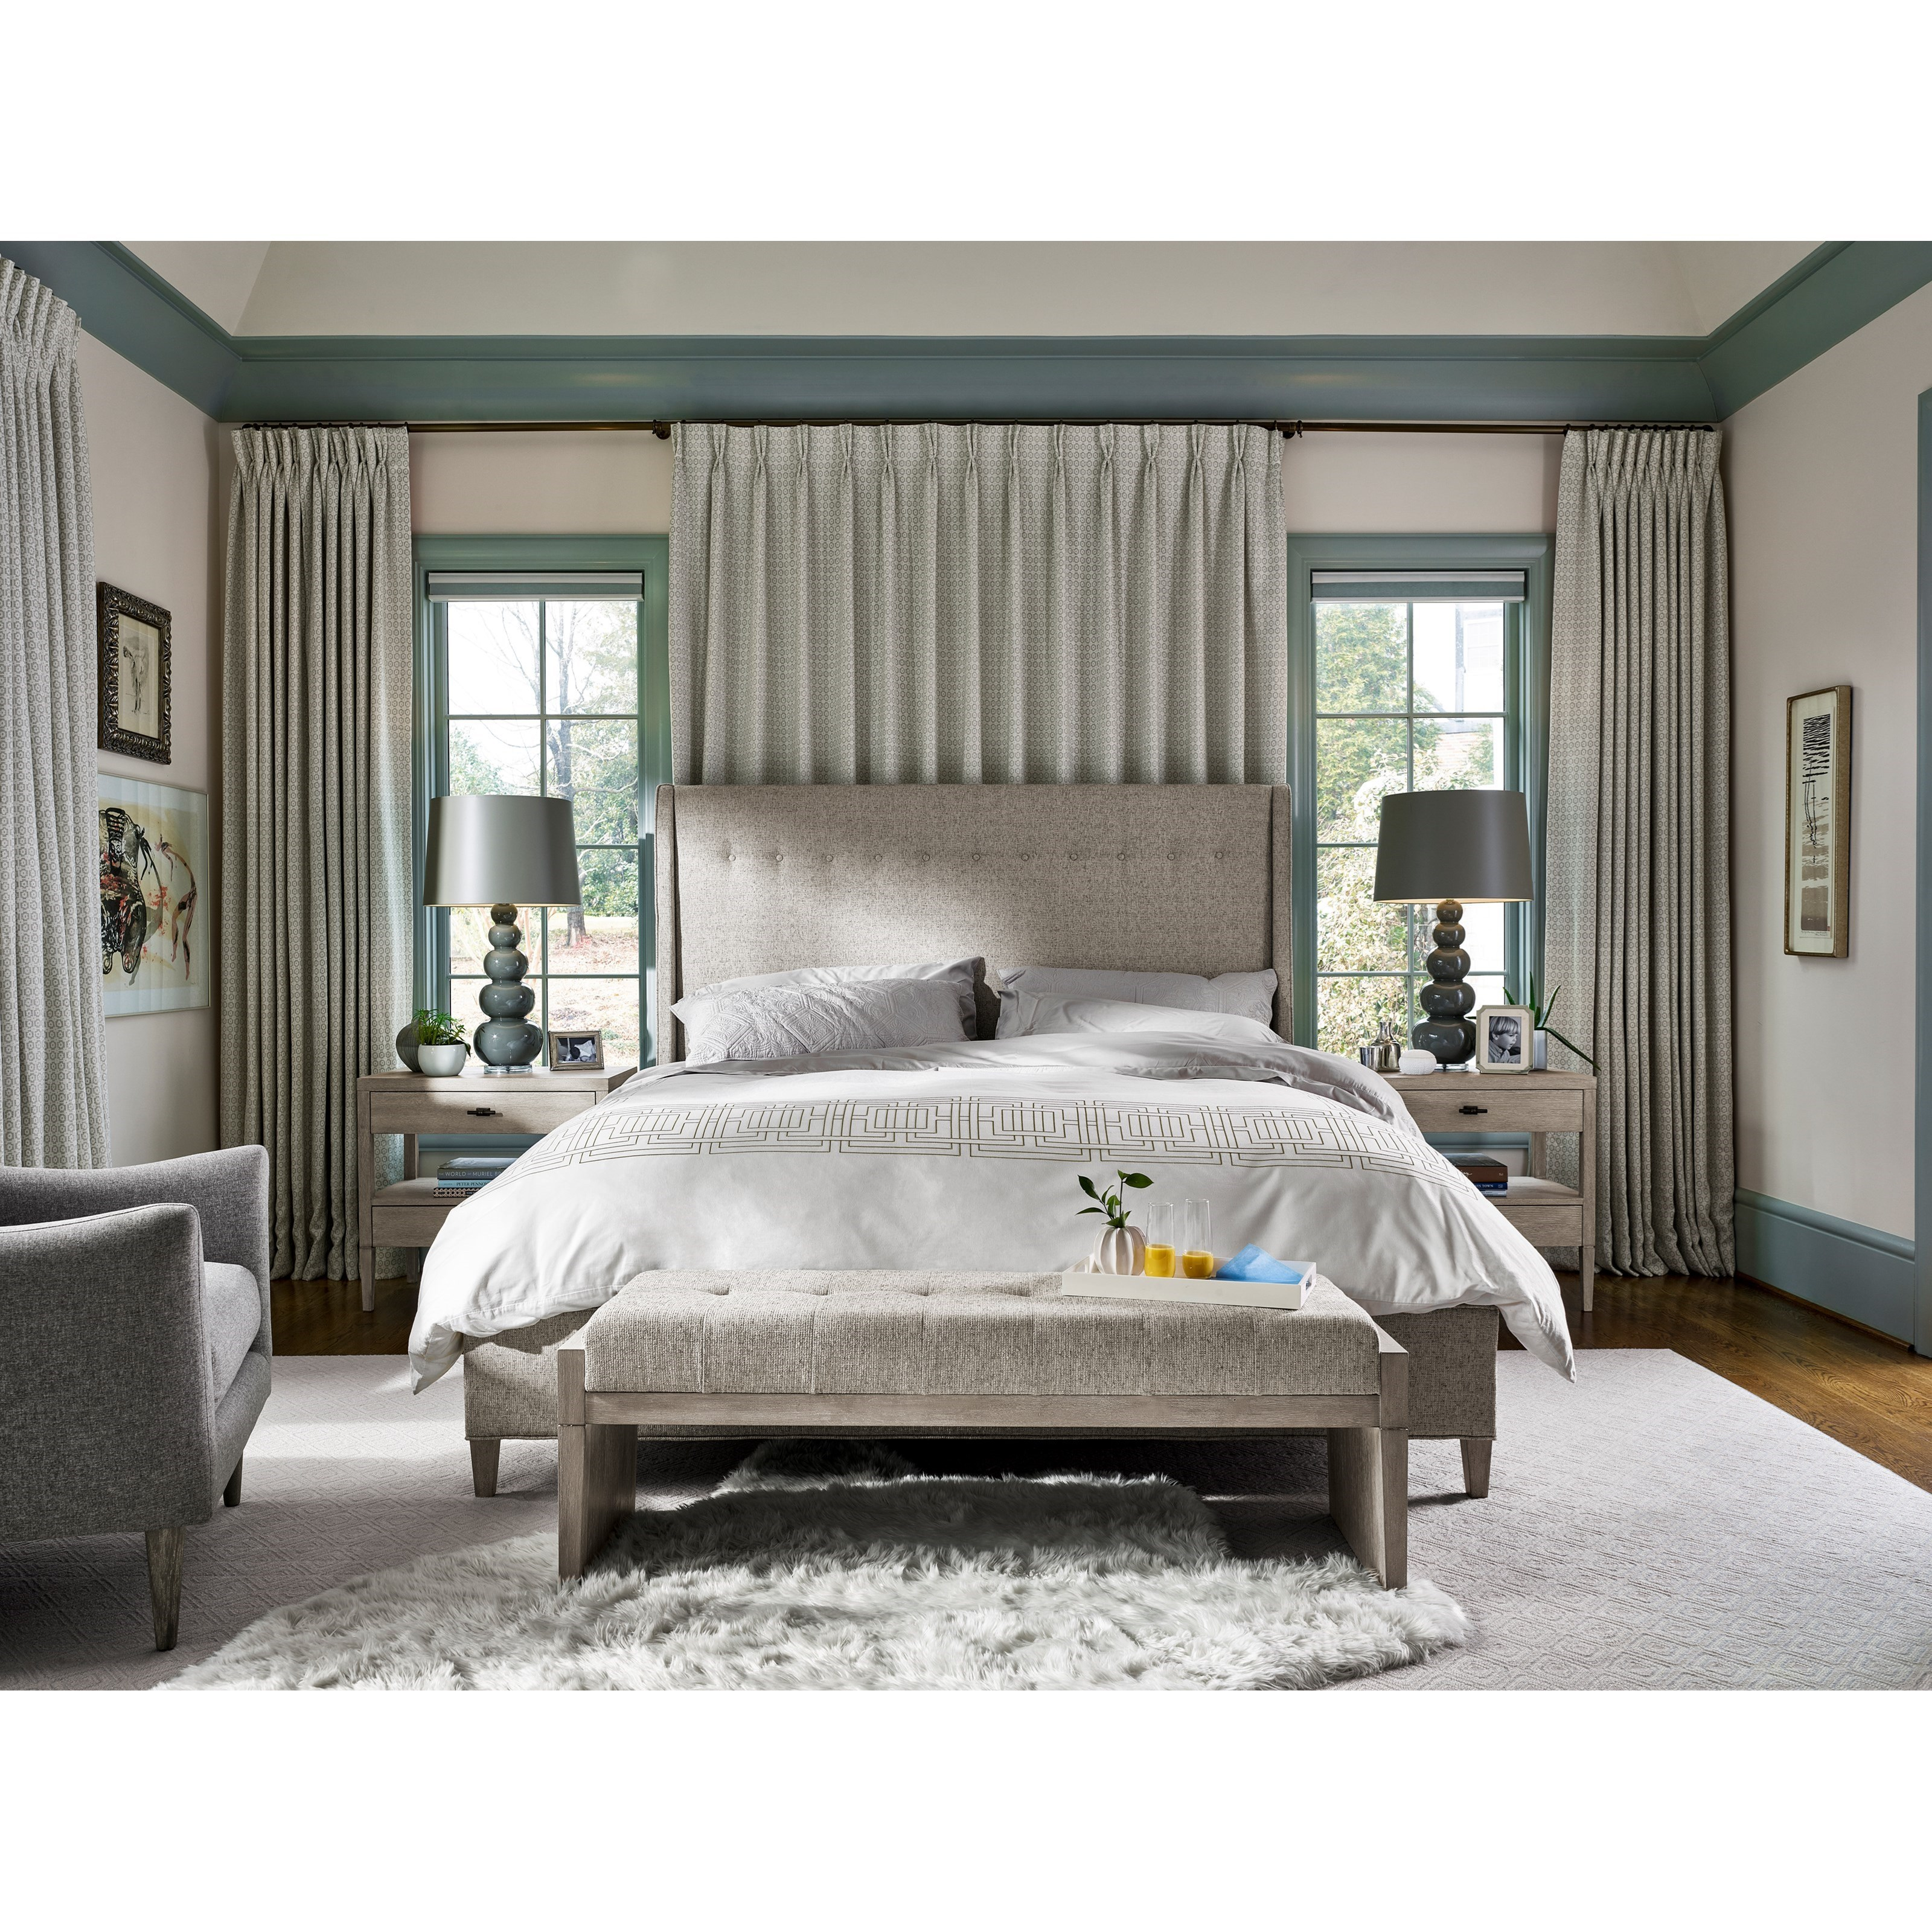 Midtown Queen Bedroom Group by Universal at Baer's Furniture